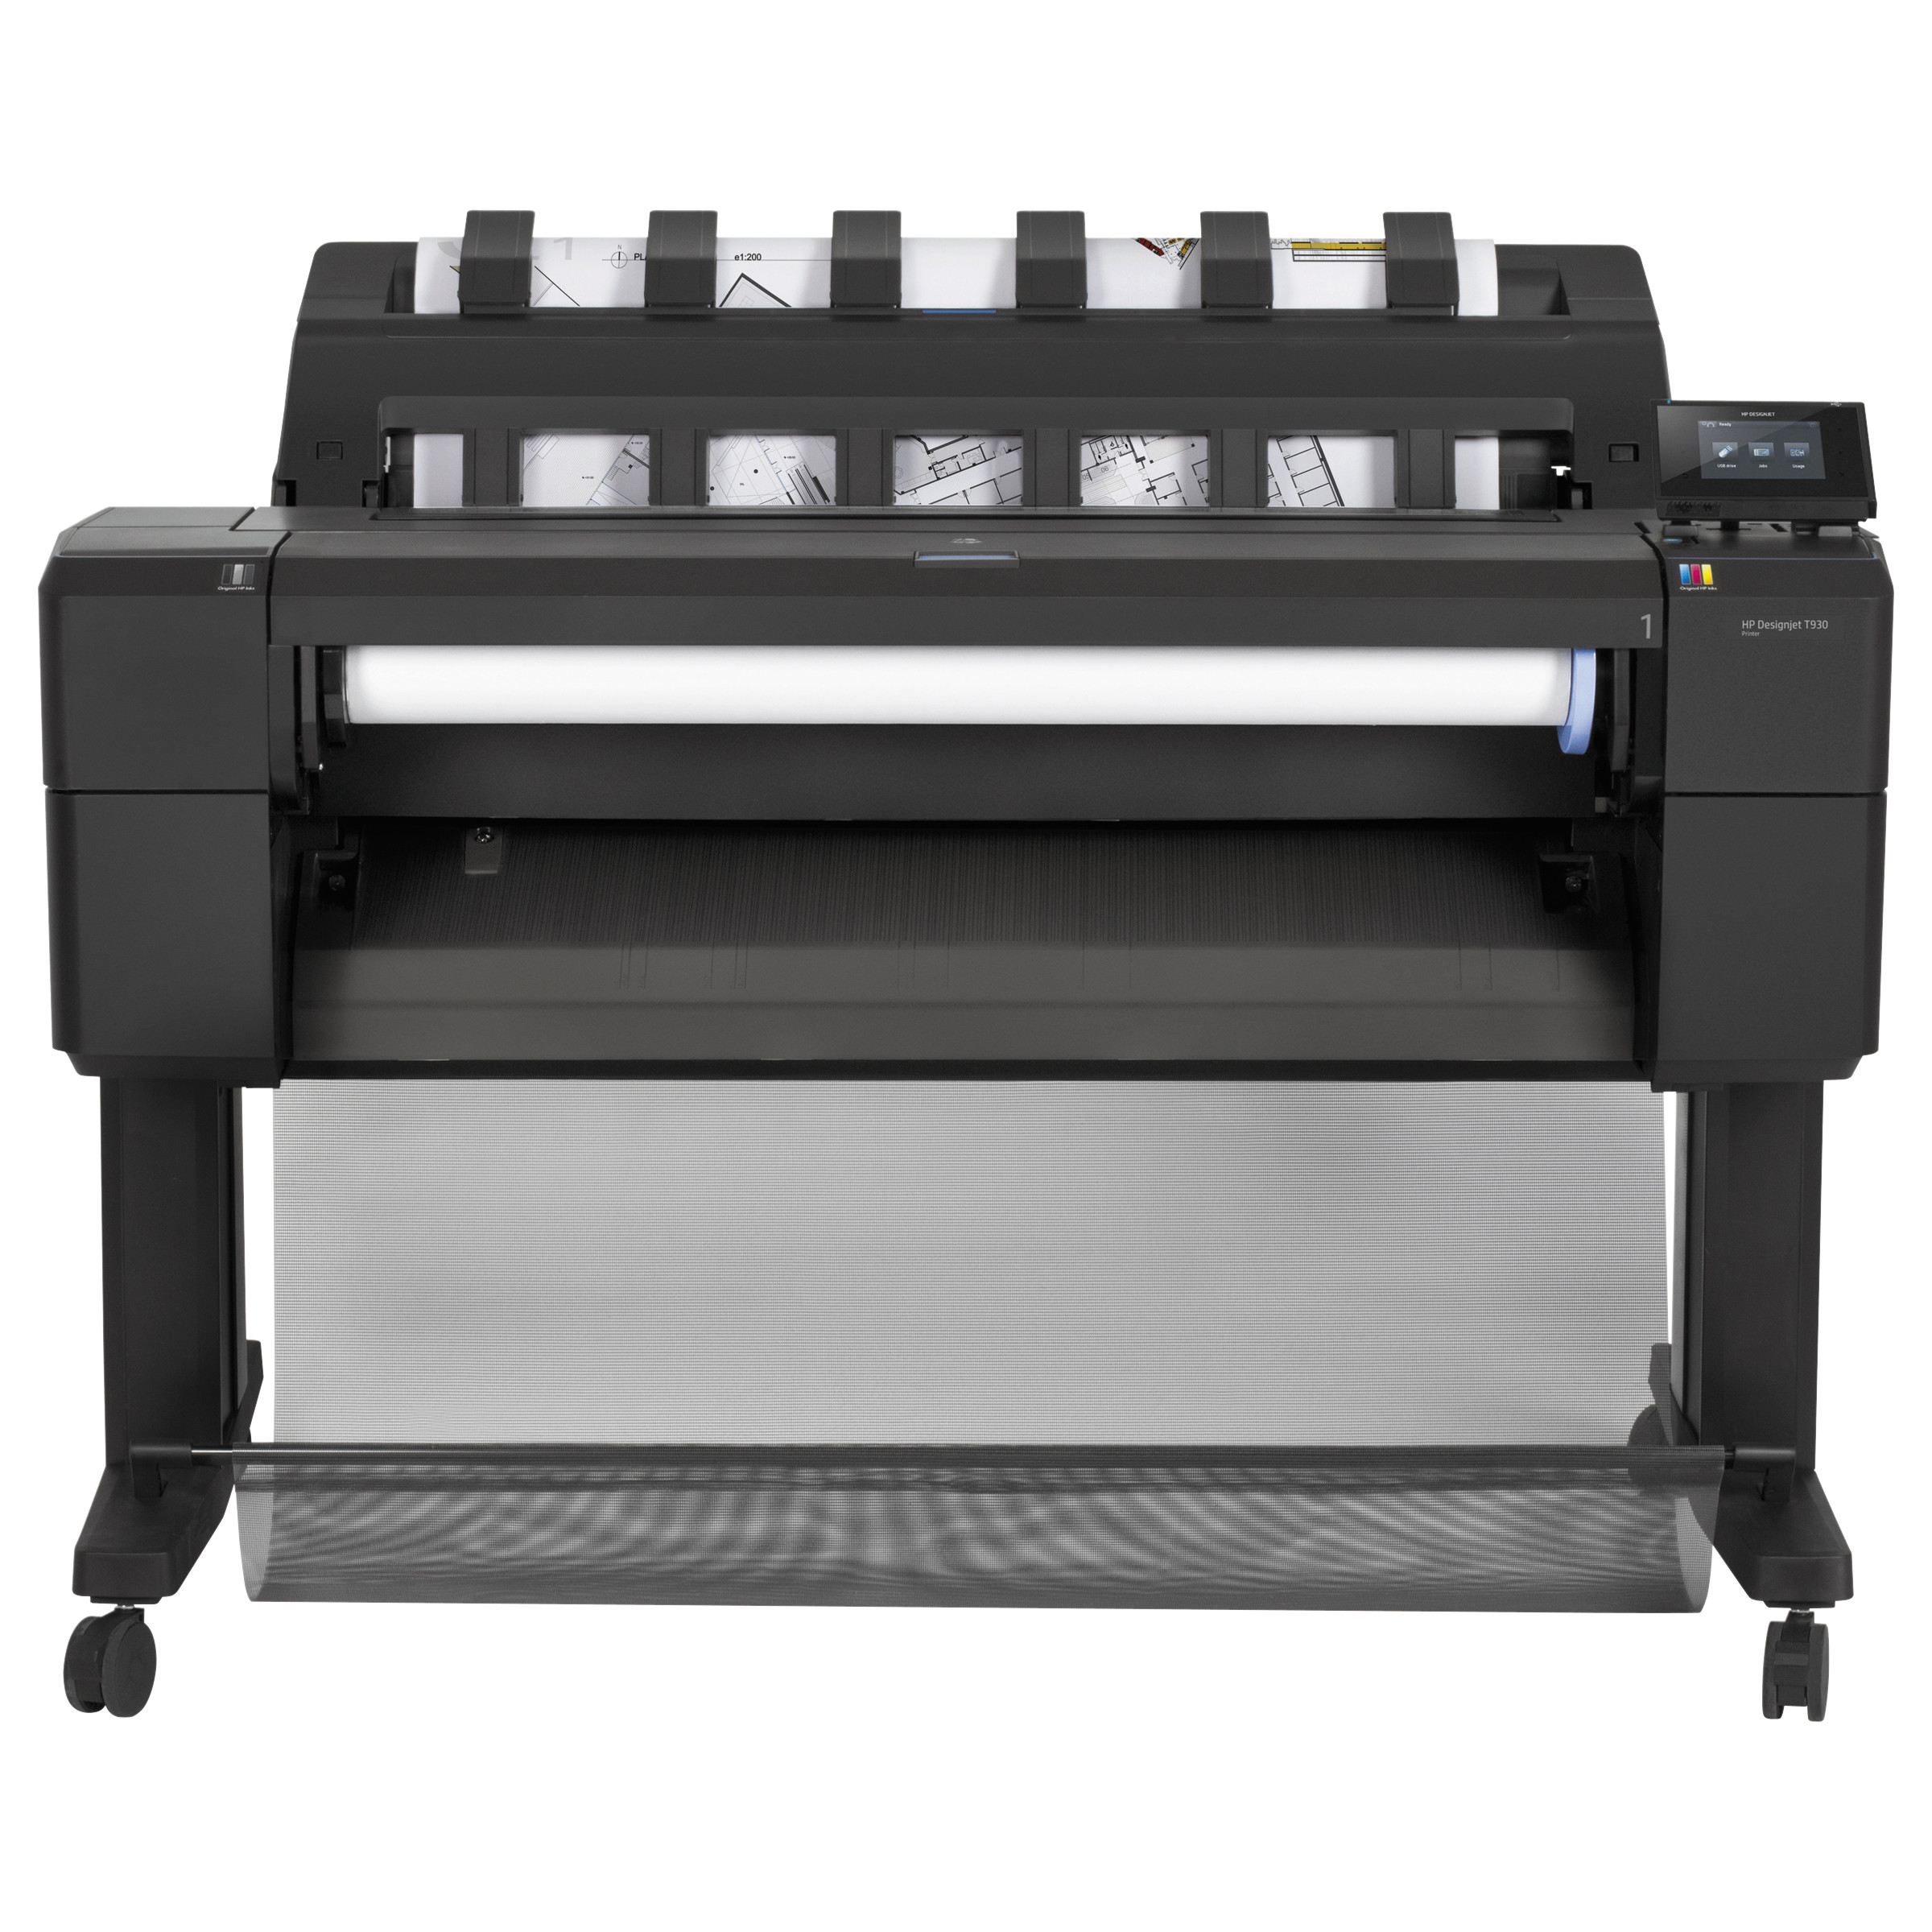 "HP Designjet T930 36"" PostScript Wide-Format Inkjet Printer -HEWL2Y22A"